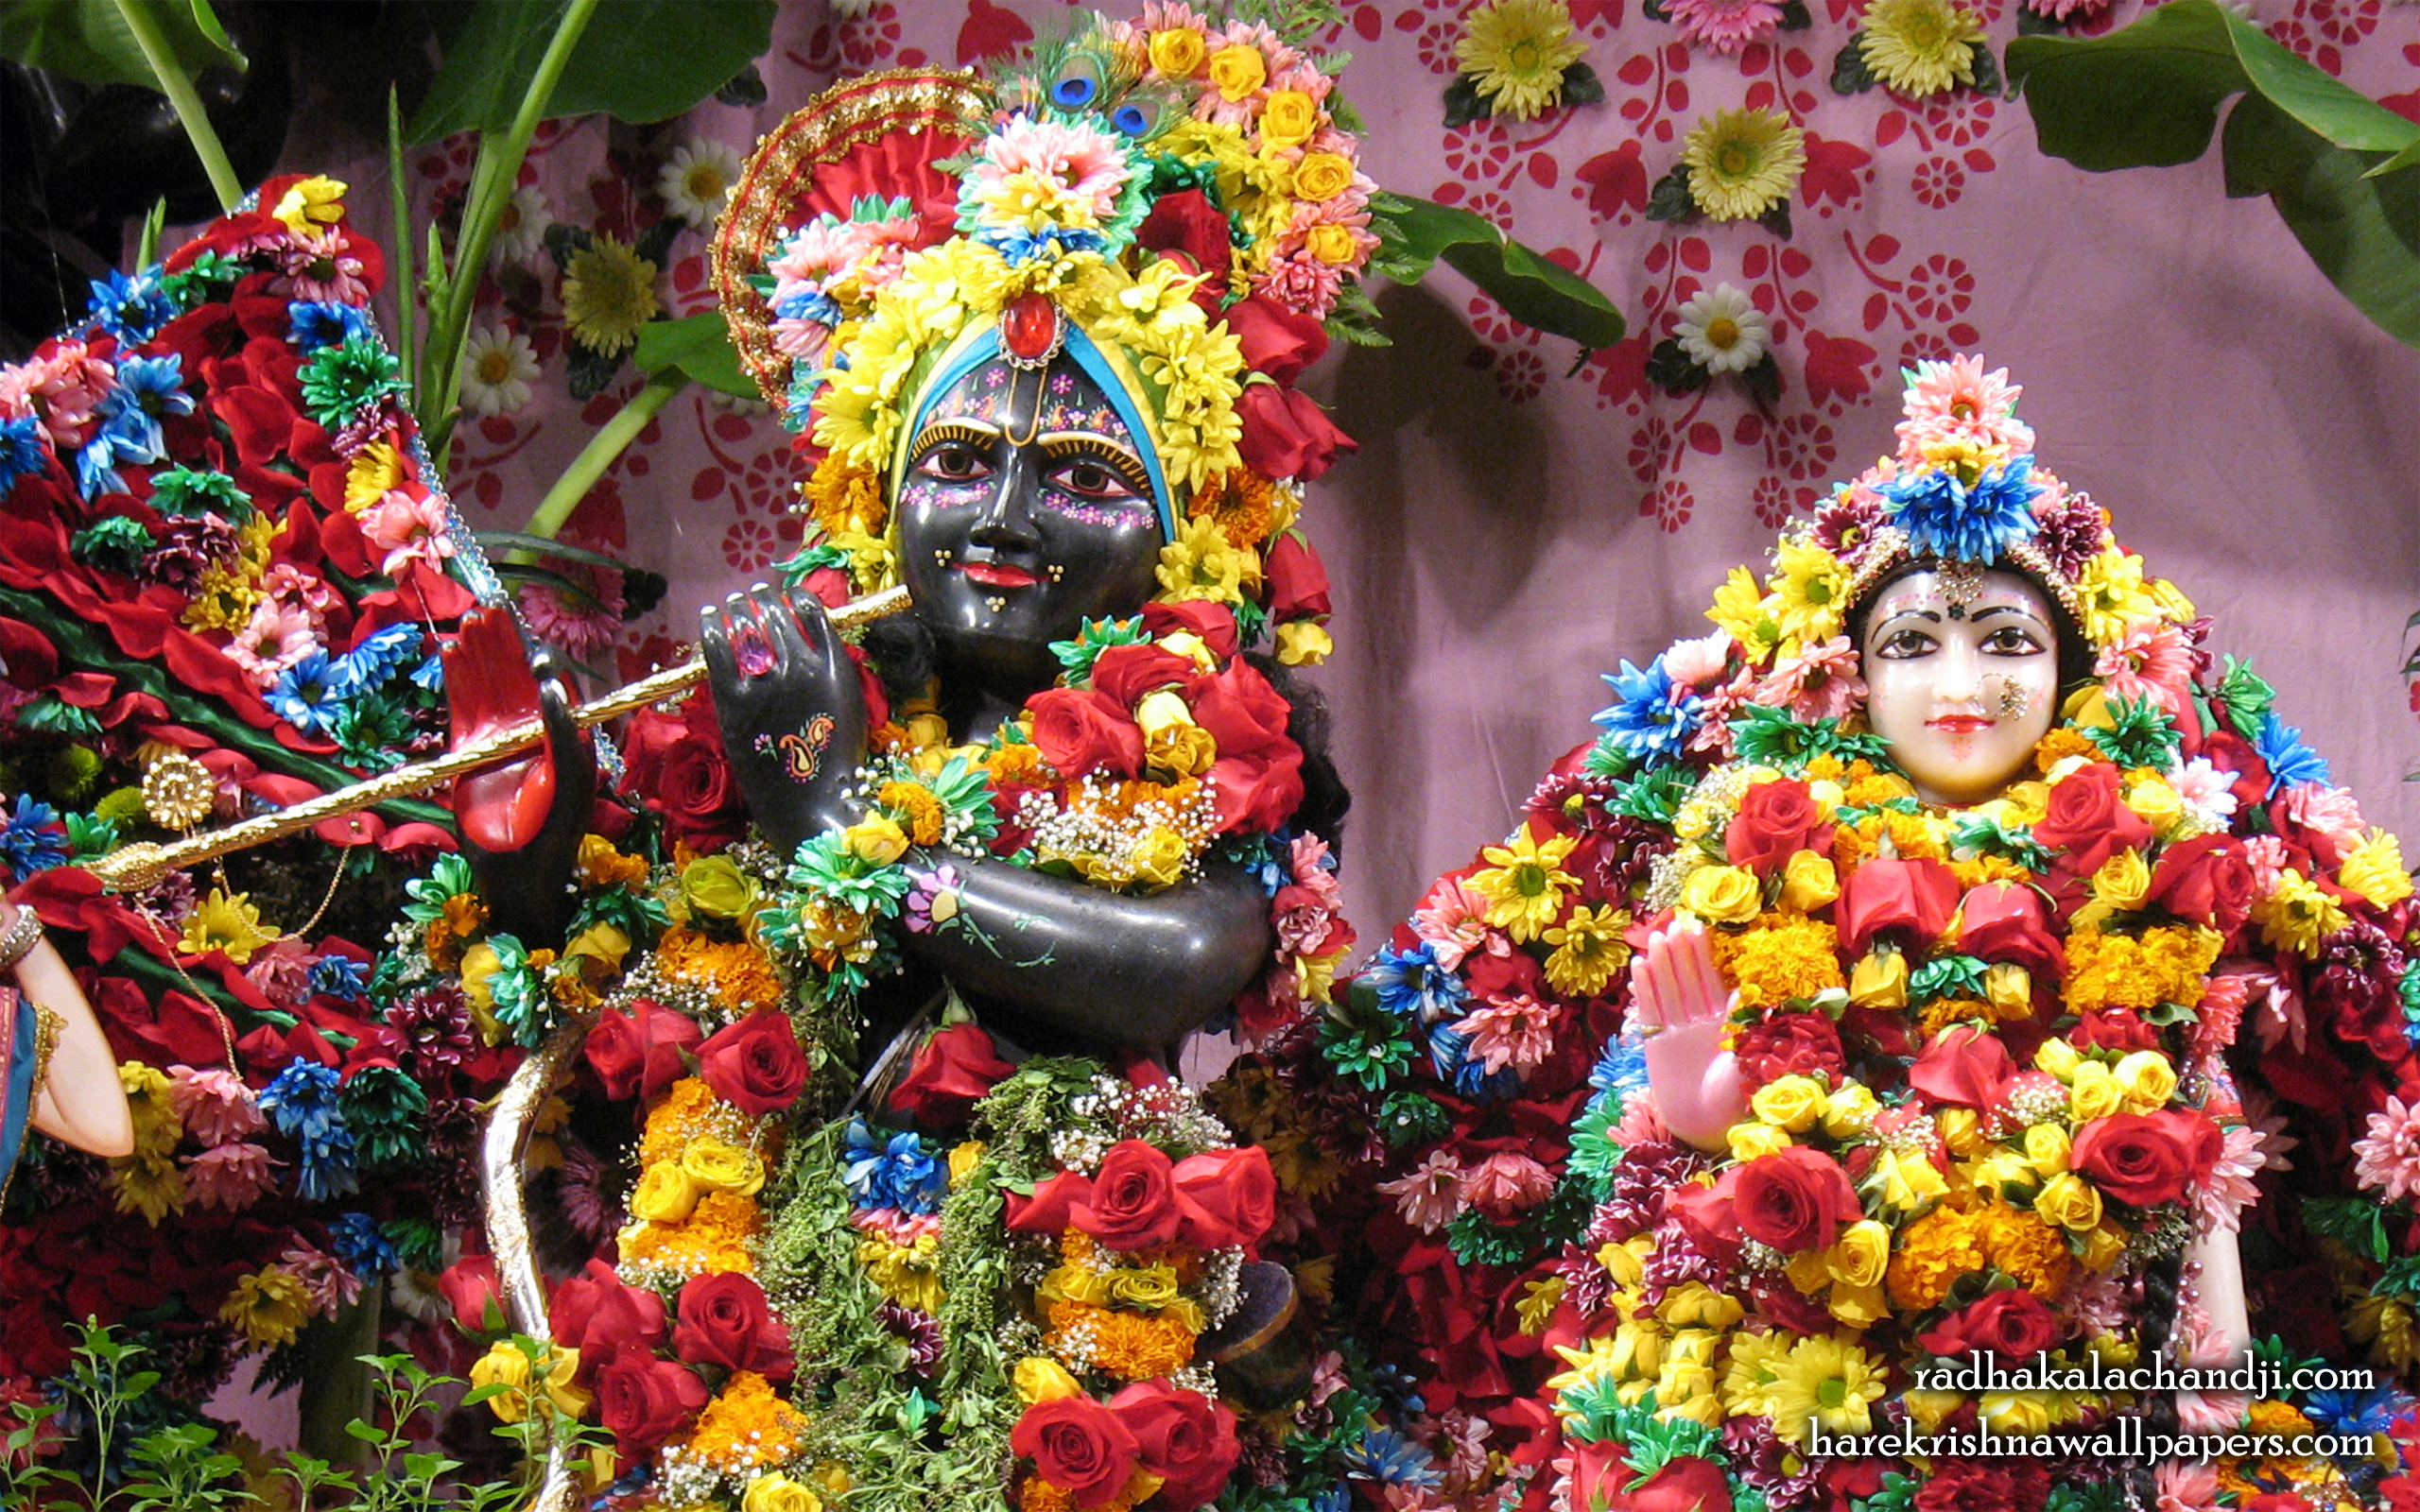 Sri Sri Radha Kalachanda Close up Wallpaper (001) Size 2560x1600 Download